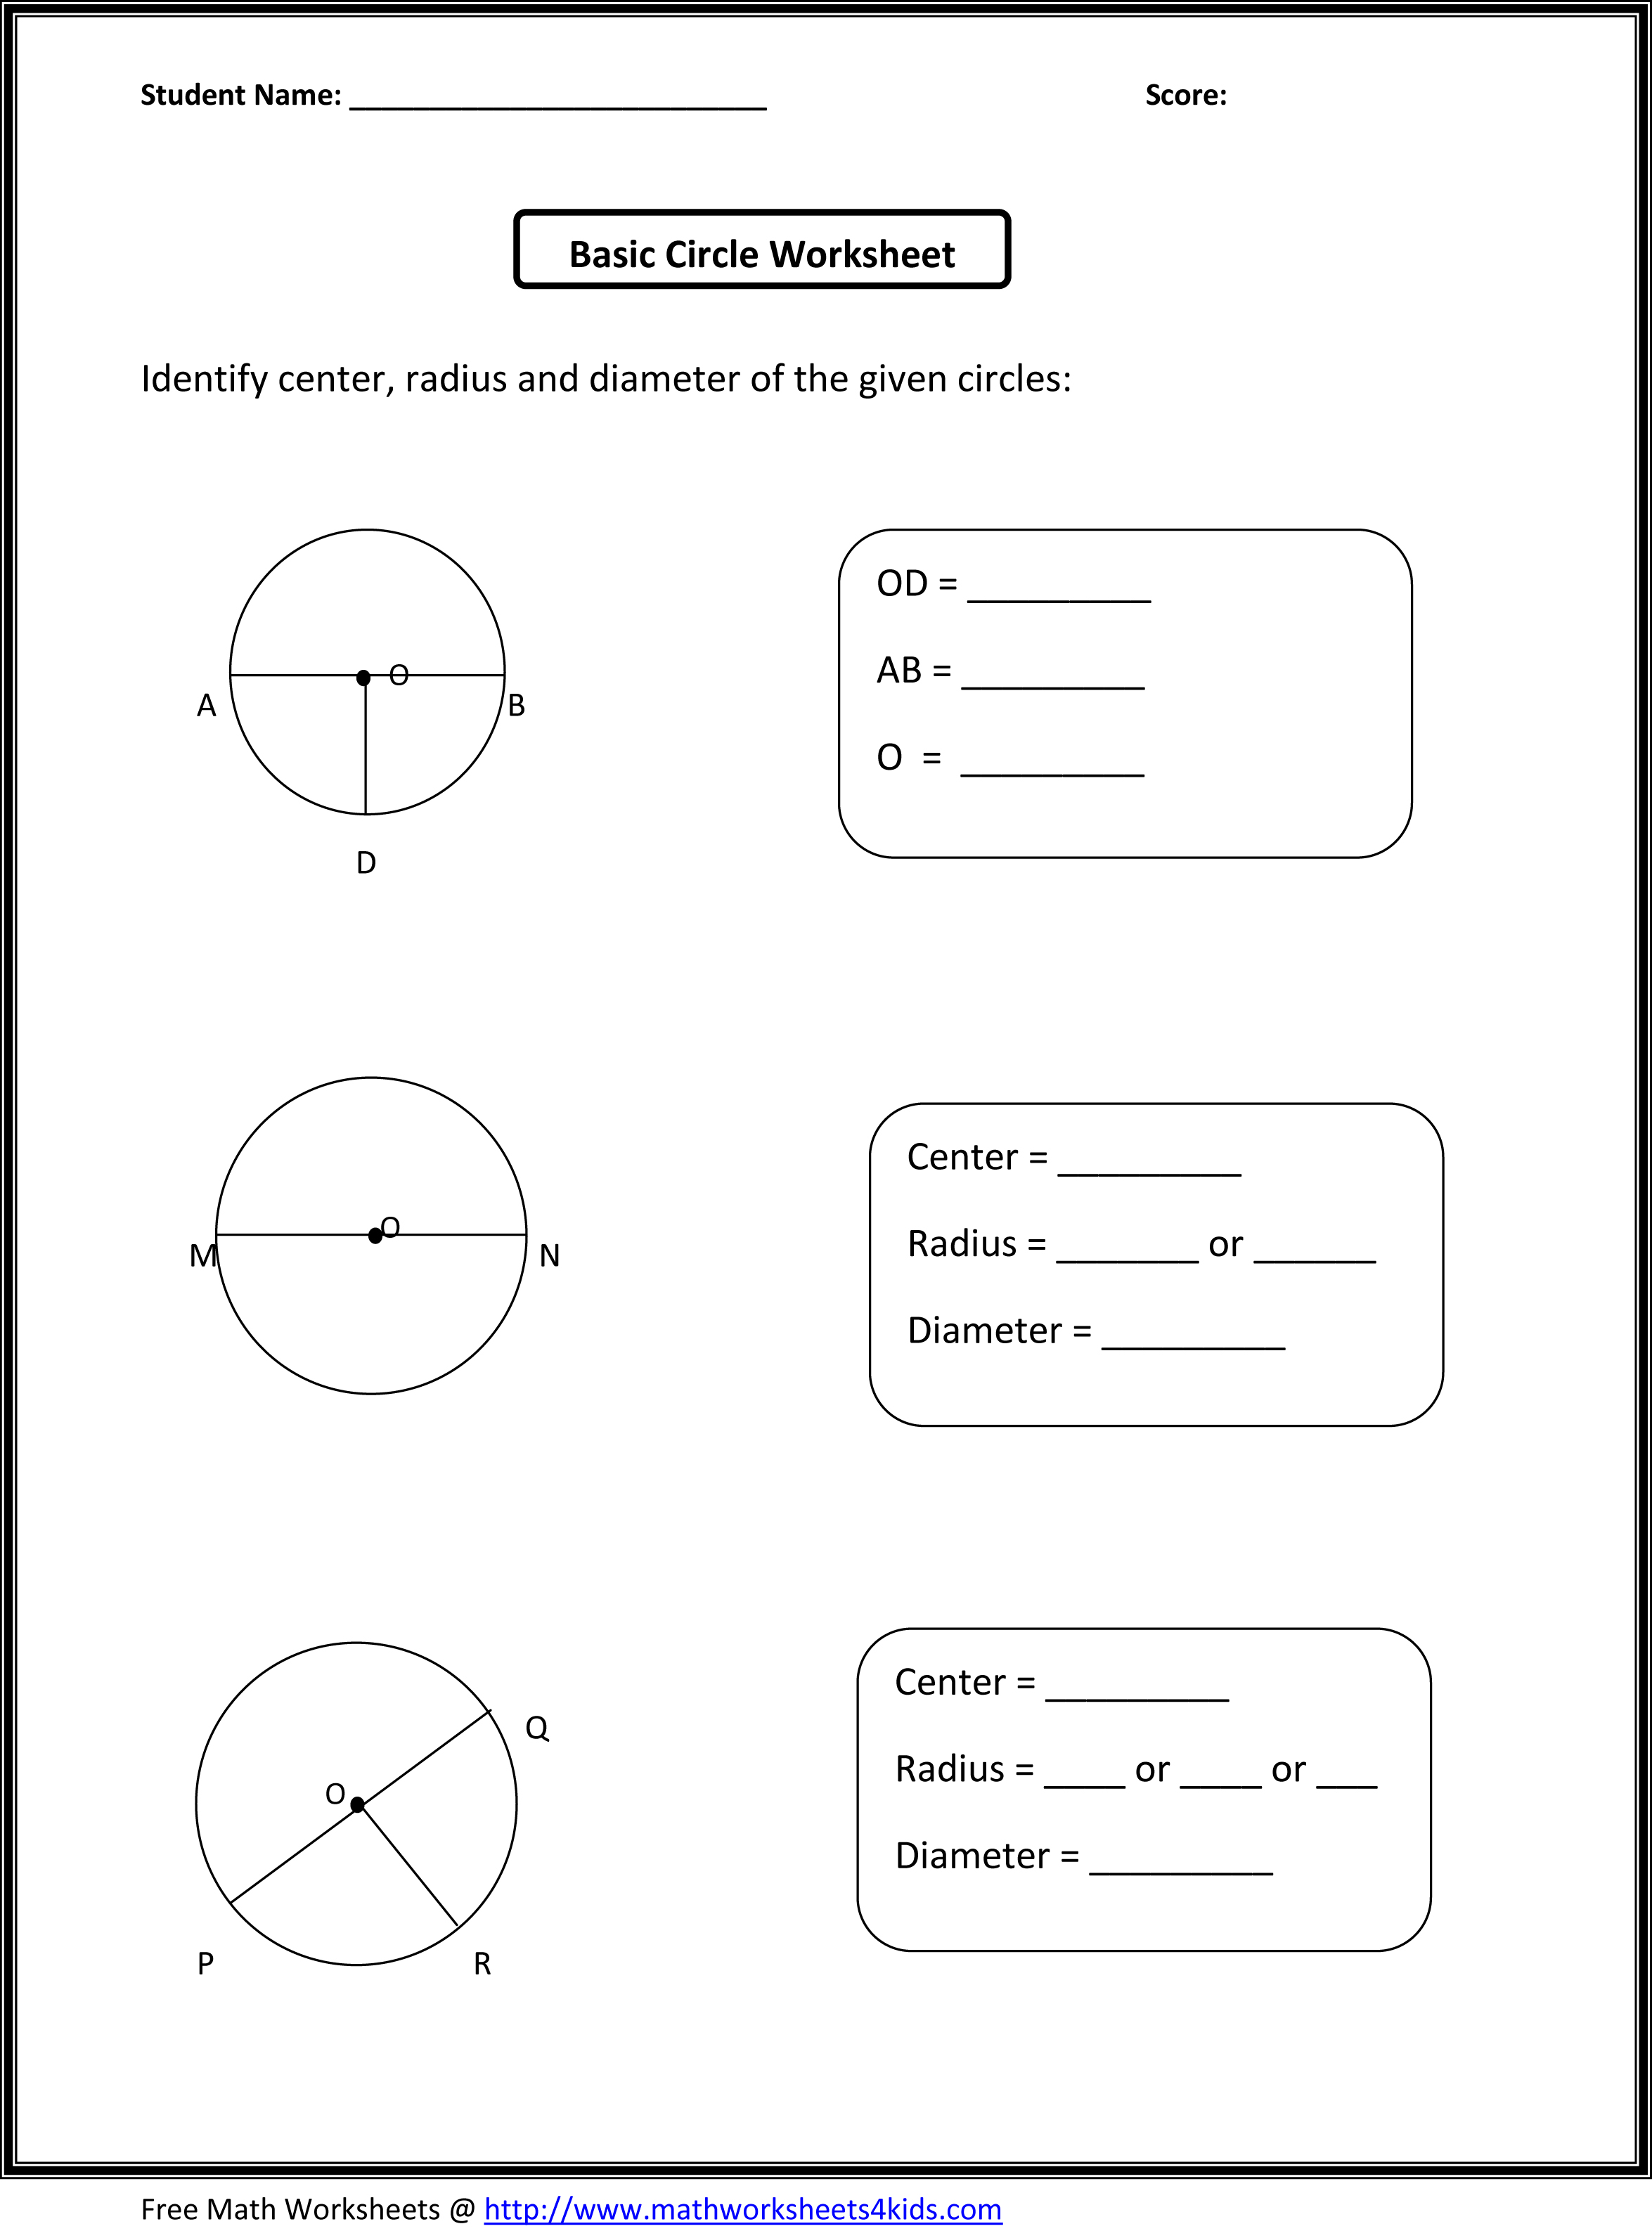 Pie Graph Worksheets 7th Grade Pie Graph Worksheets 7th Grade Geometry Worksheets